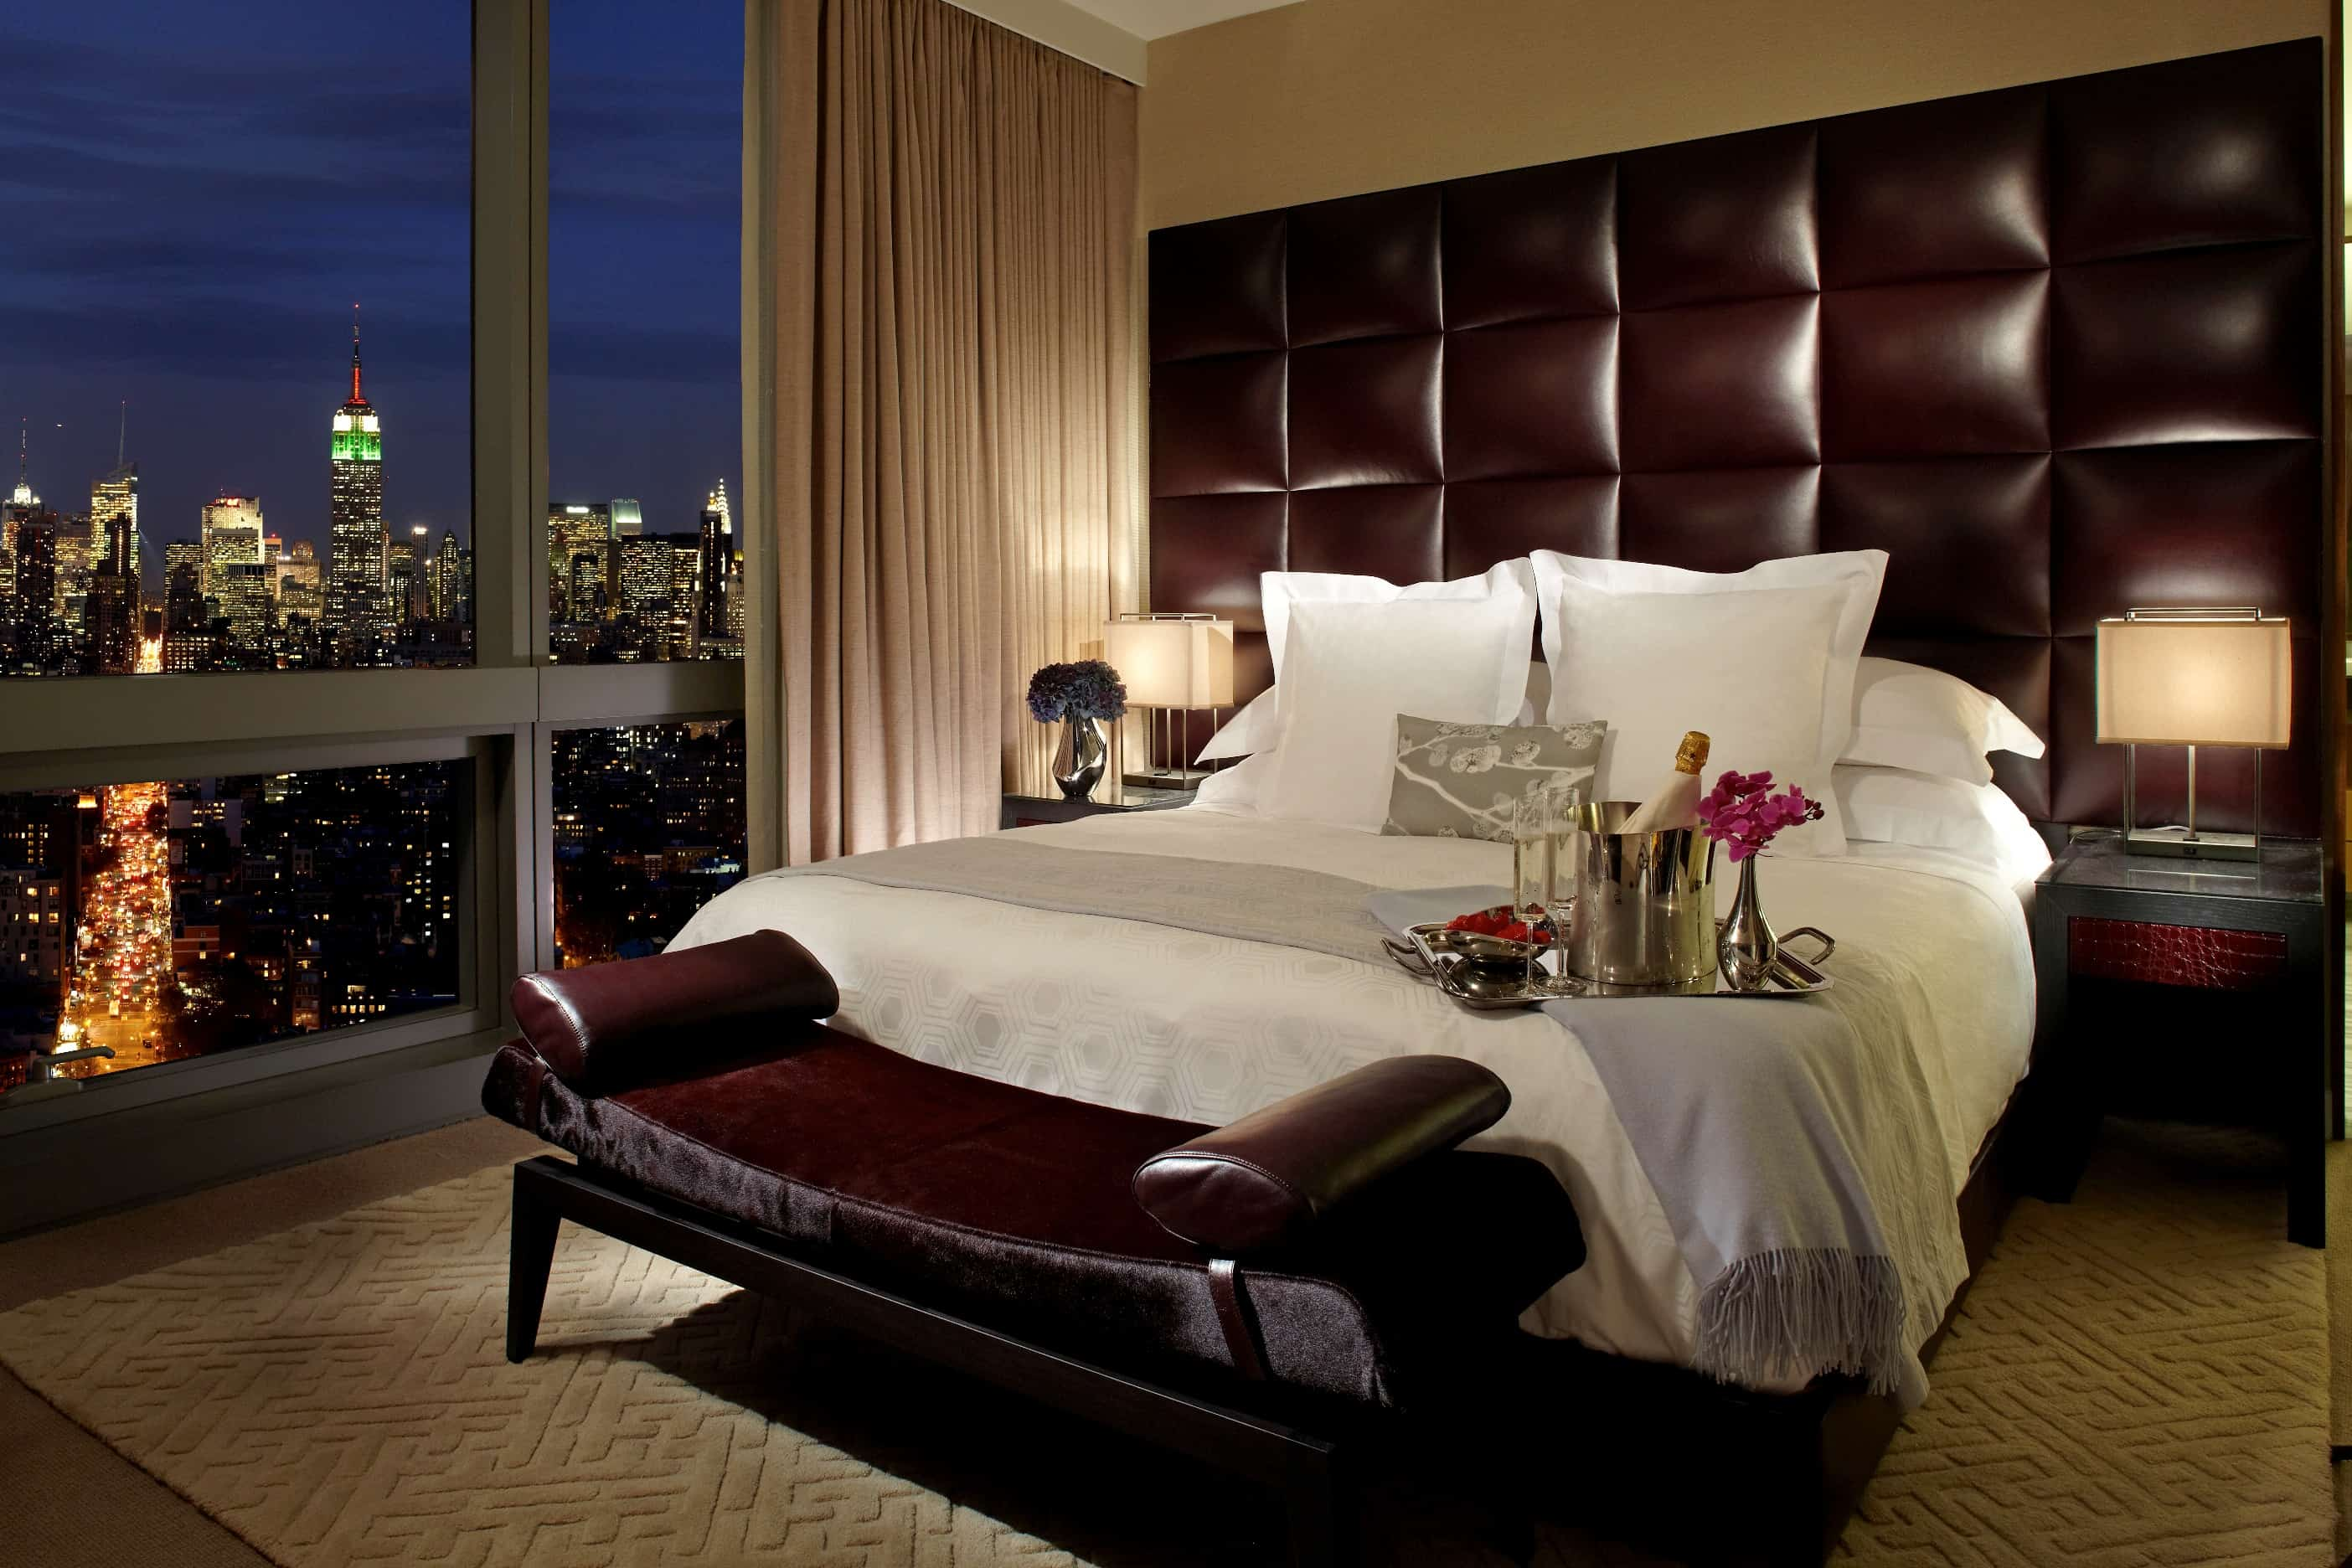 Trump Hotel New York Rooms